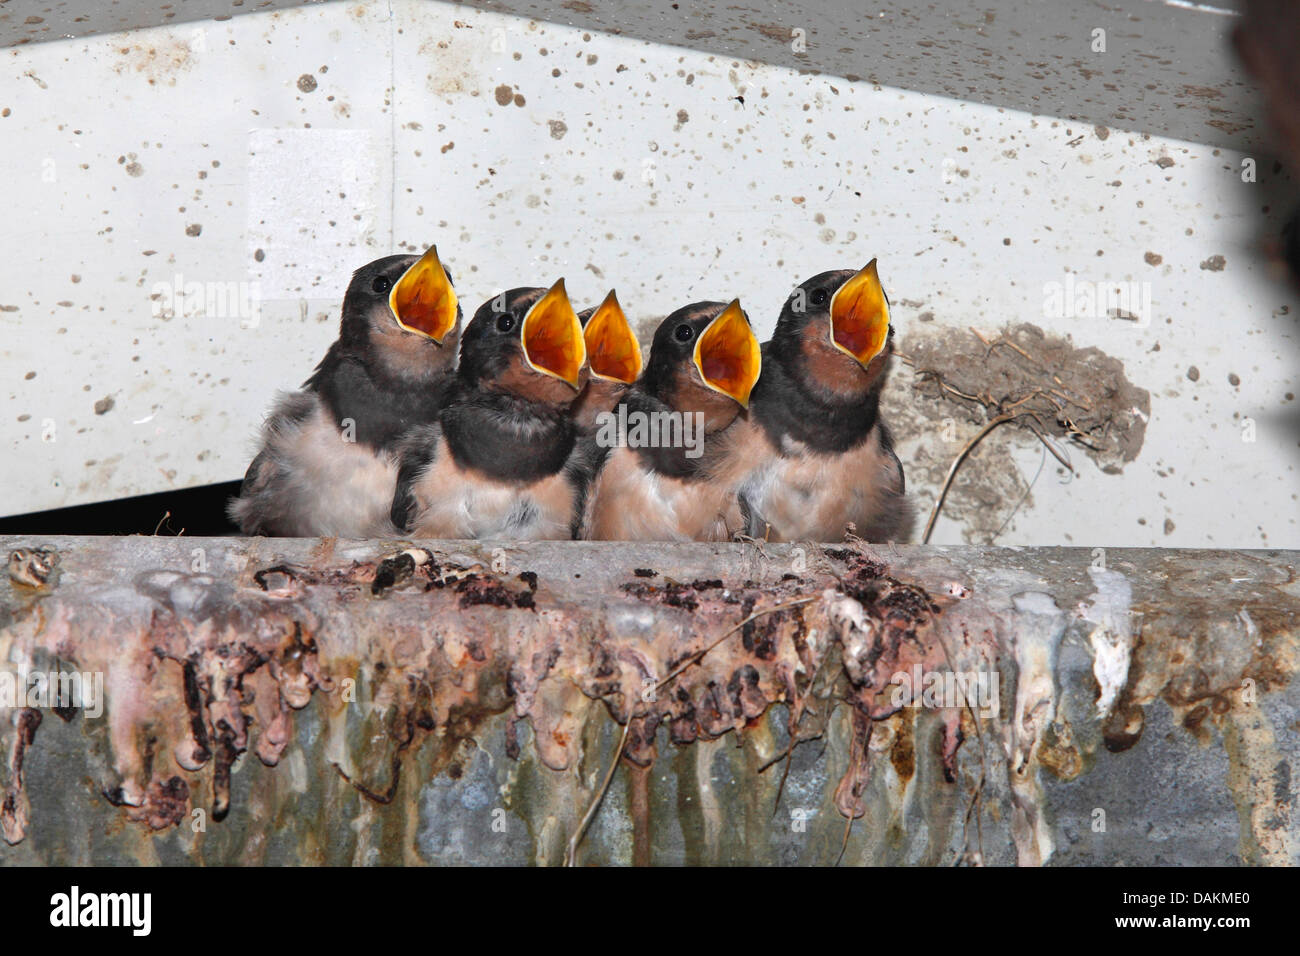 barn swallow (Hirundo rustica), young birds in the nest looking for the adult bird, that brings food, Netherlands, - Stock Image